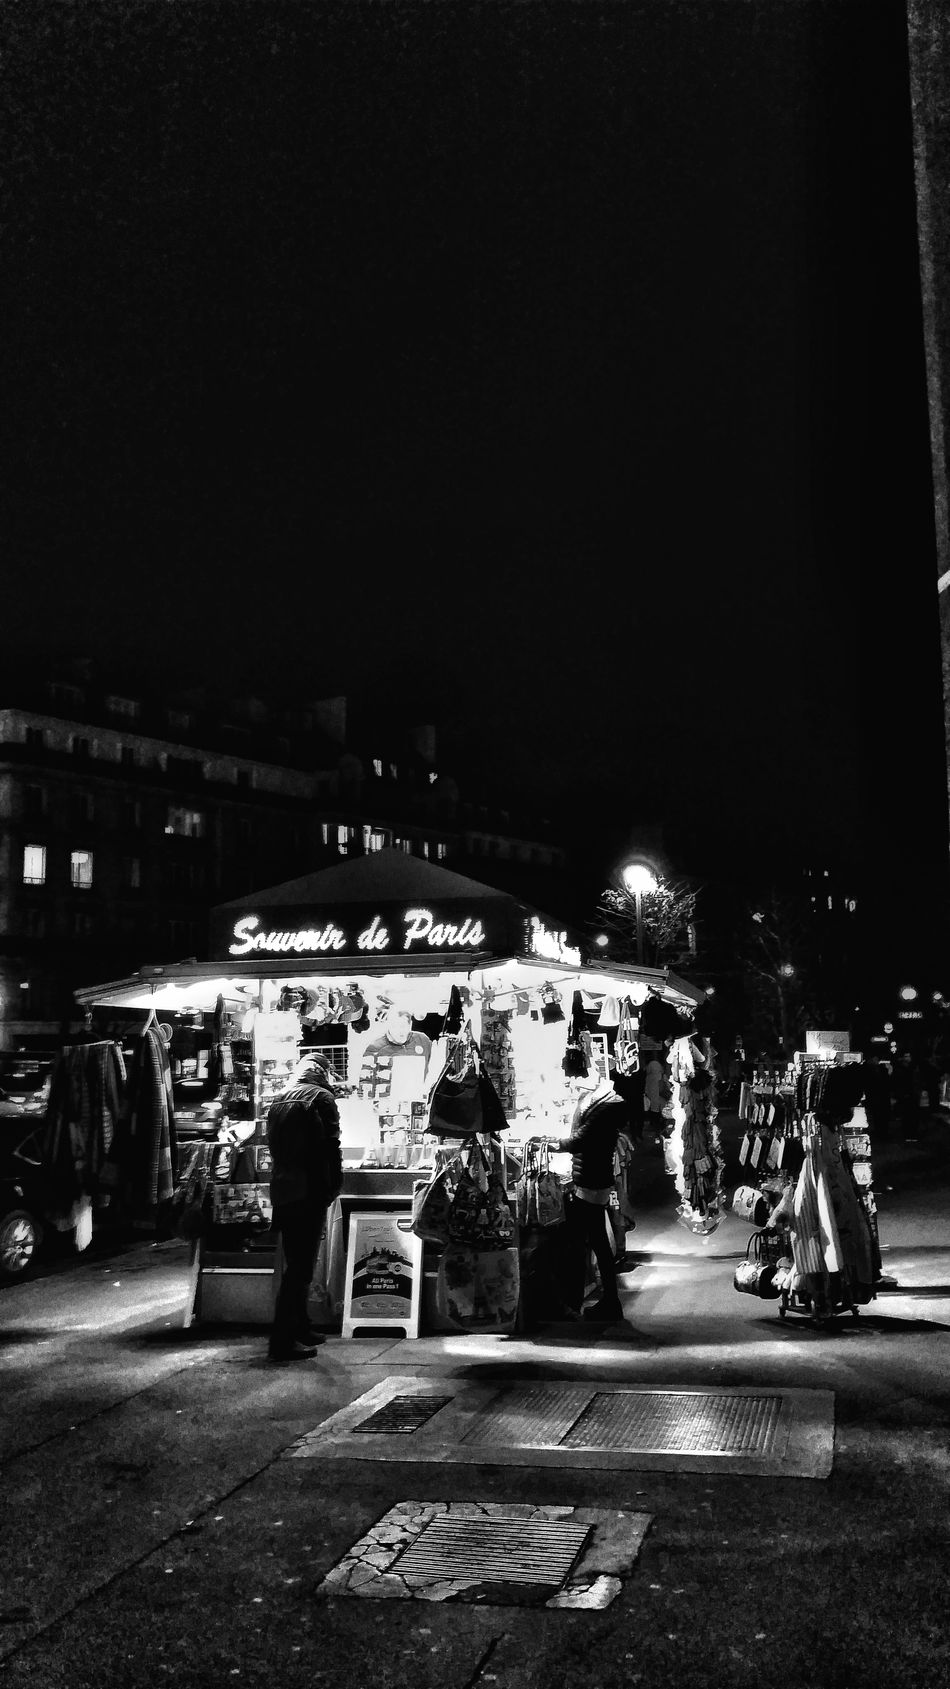 Night Real People City Built Structure Illuminated Architecture Adults Only People Travel Destinations Paris ❤ City Life Capture The Moment People Of EyeEm City Street People Walking  Samsung Galaxy S5 From My Point Of View. Blackandwhite Photography Blackandwhite Black And White Scenics Architecture Silhouette Tour Eiffel Black And White